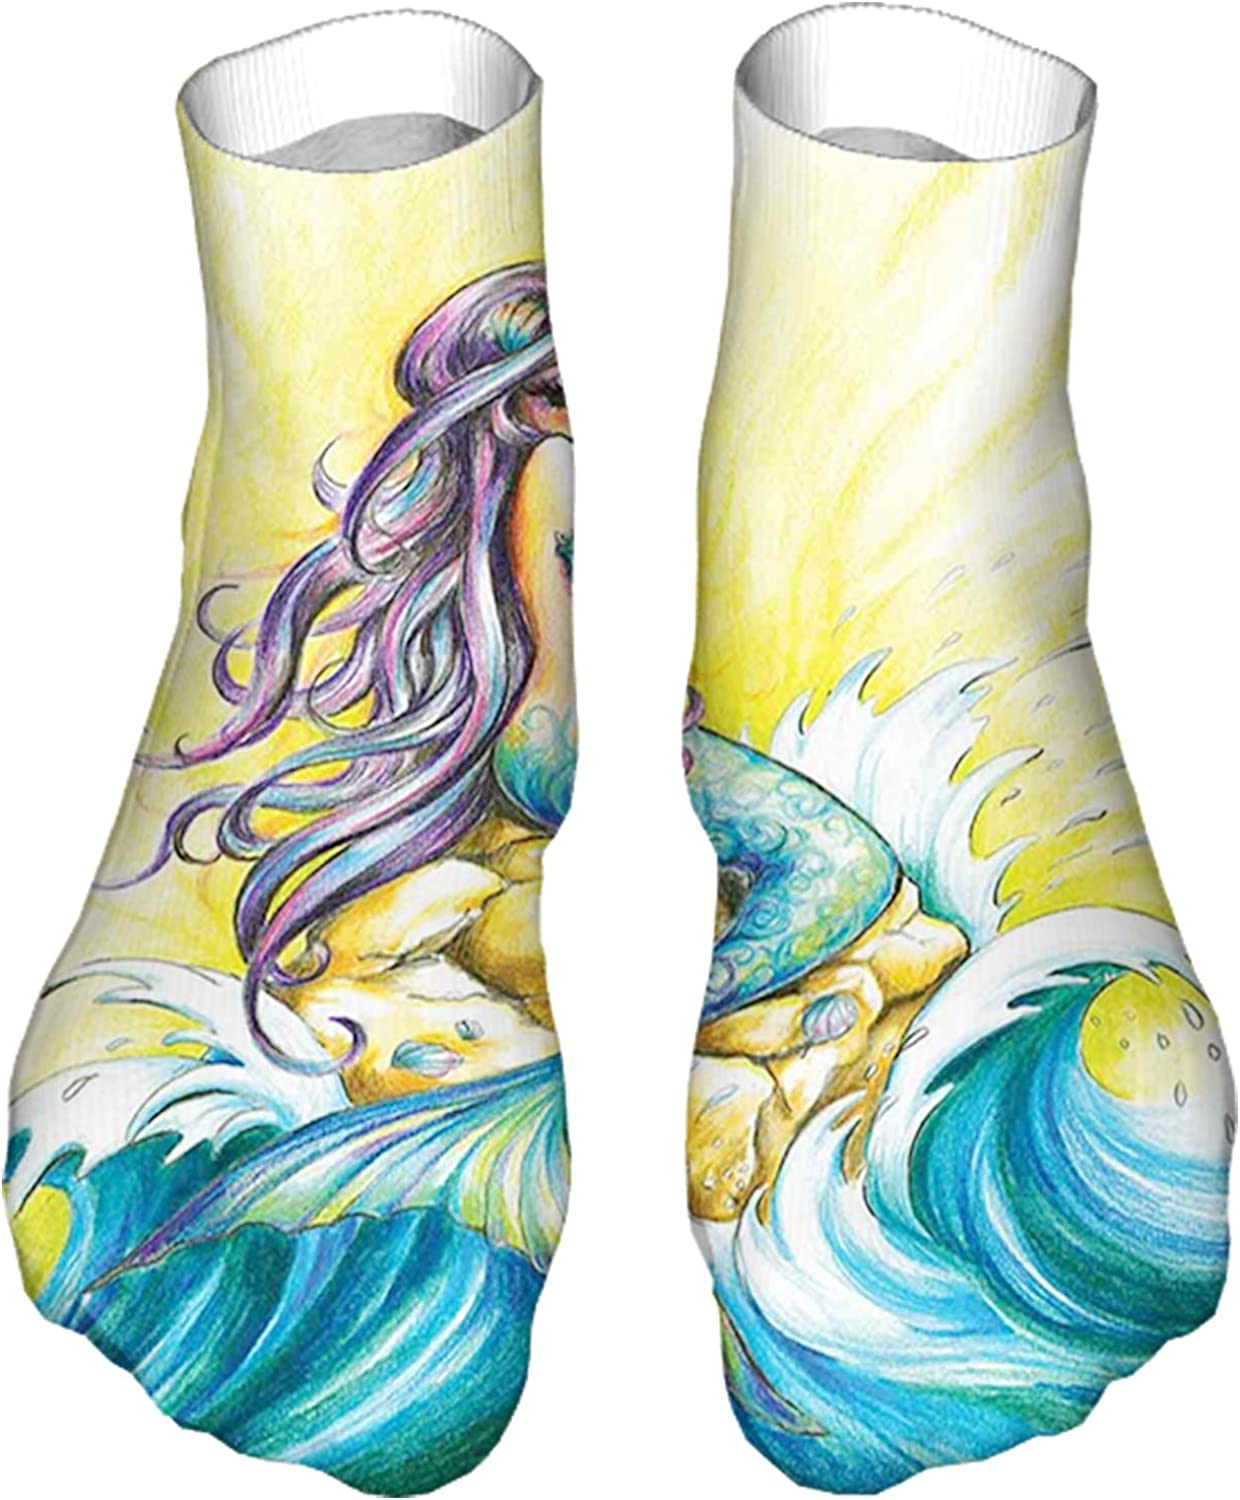 Women's Colorful Patterned Unisex Low Cut/No Show Socks,Magical Mermaid Sitting on Rock Sunny Day Colored Pencil